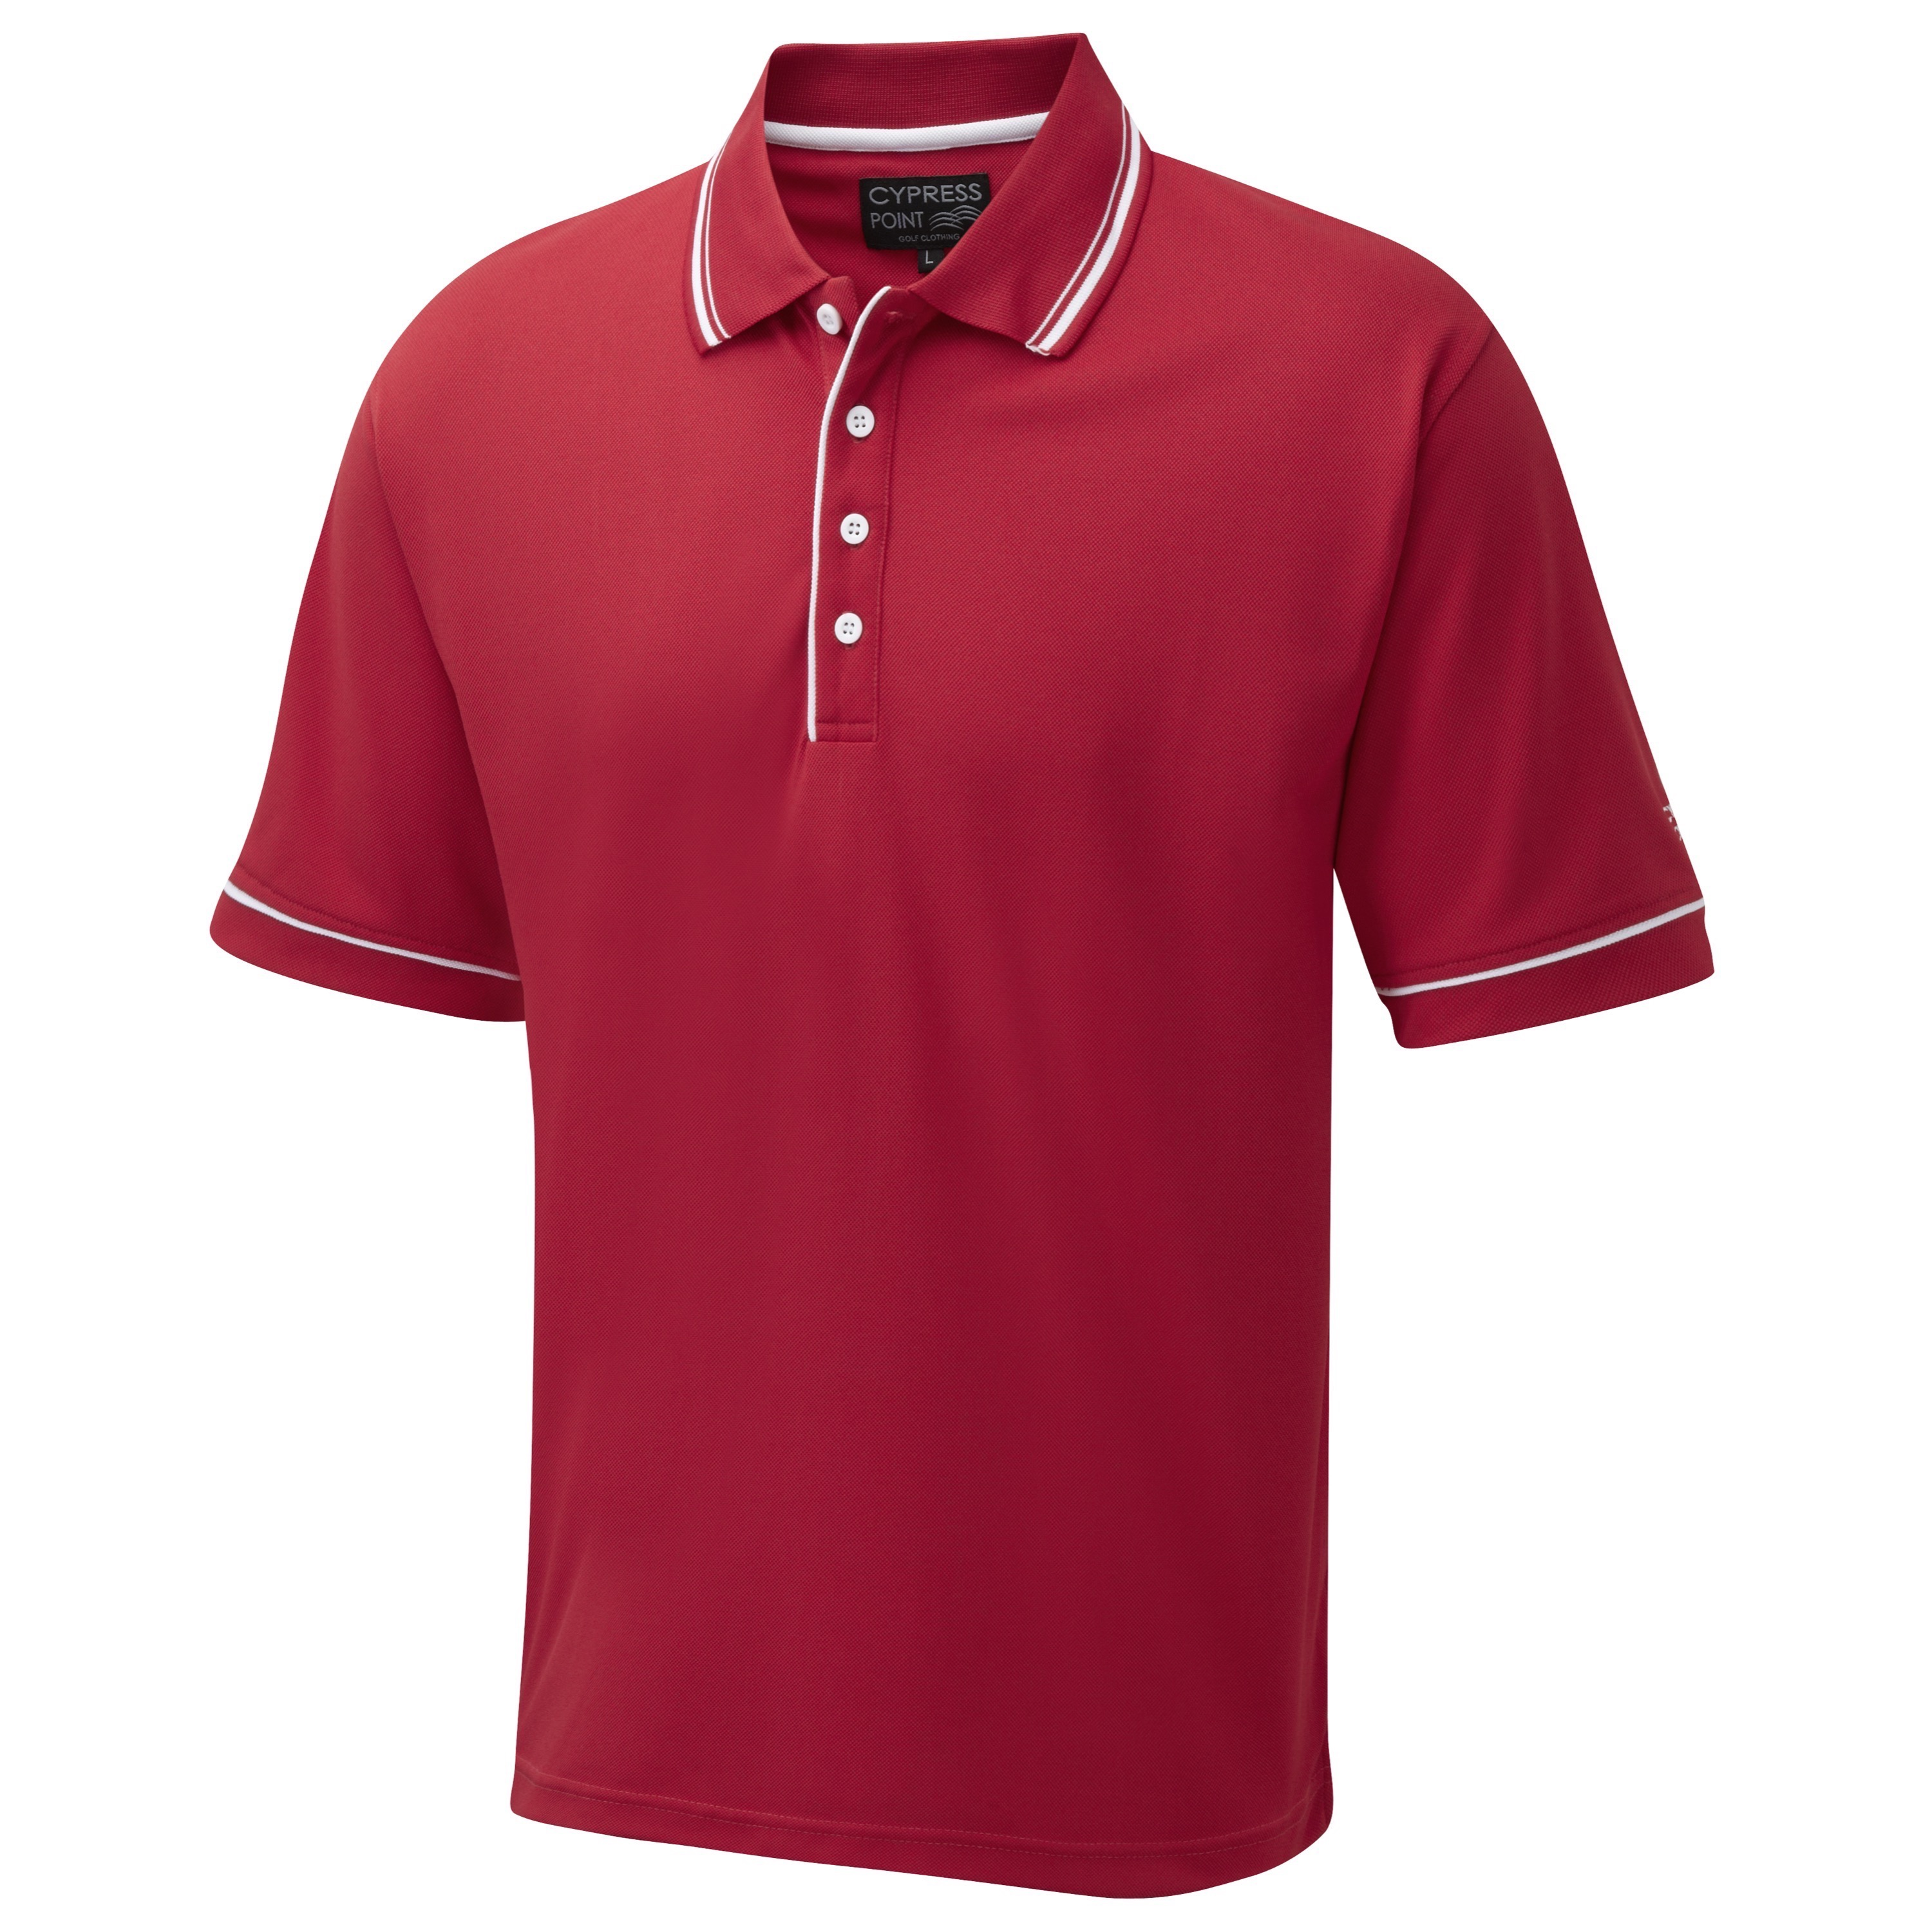 Cypress point classic polo shirt red scottsdale golf for Name brand golf shirts